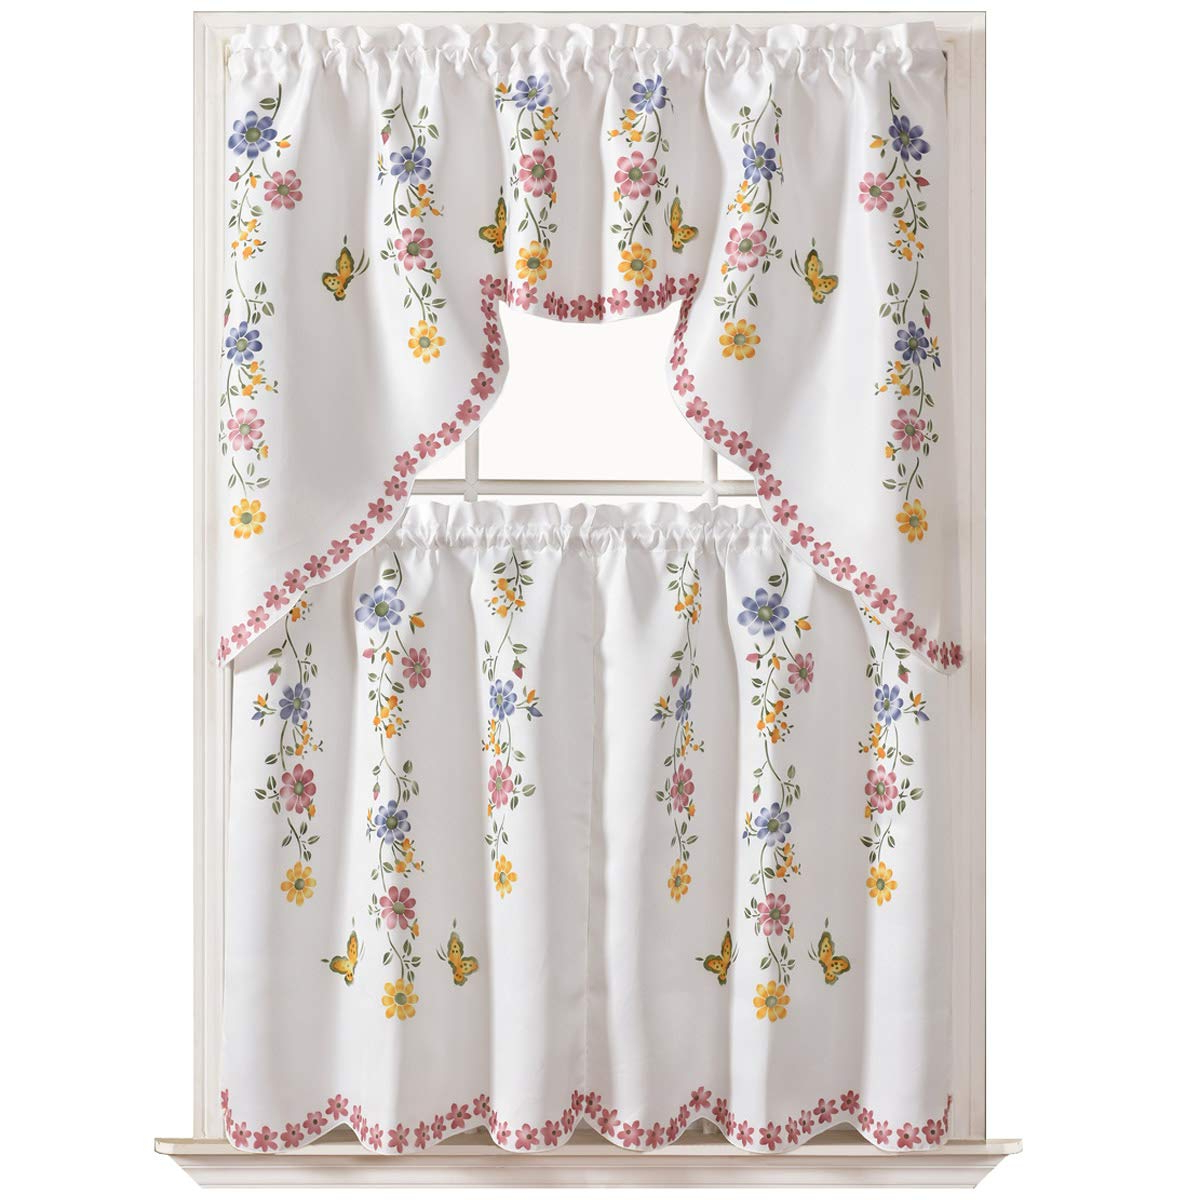 Gohd Golden Ocean Home Decor Daisy Swing 3Pcs Kitchen Cafe Curtain Set Air  Brushedhand Of Daisy And Butterfly Design On Thick Satin Fabric With Popular Spring Daisy Tiered Curtain 3 Piece Sets (View 5 of 20)